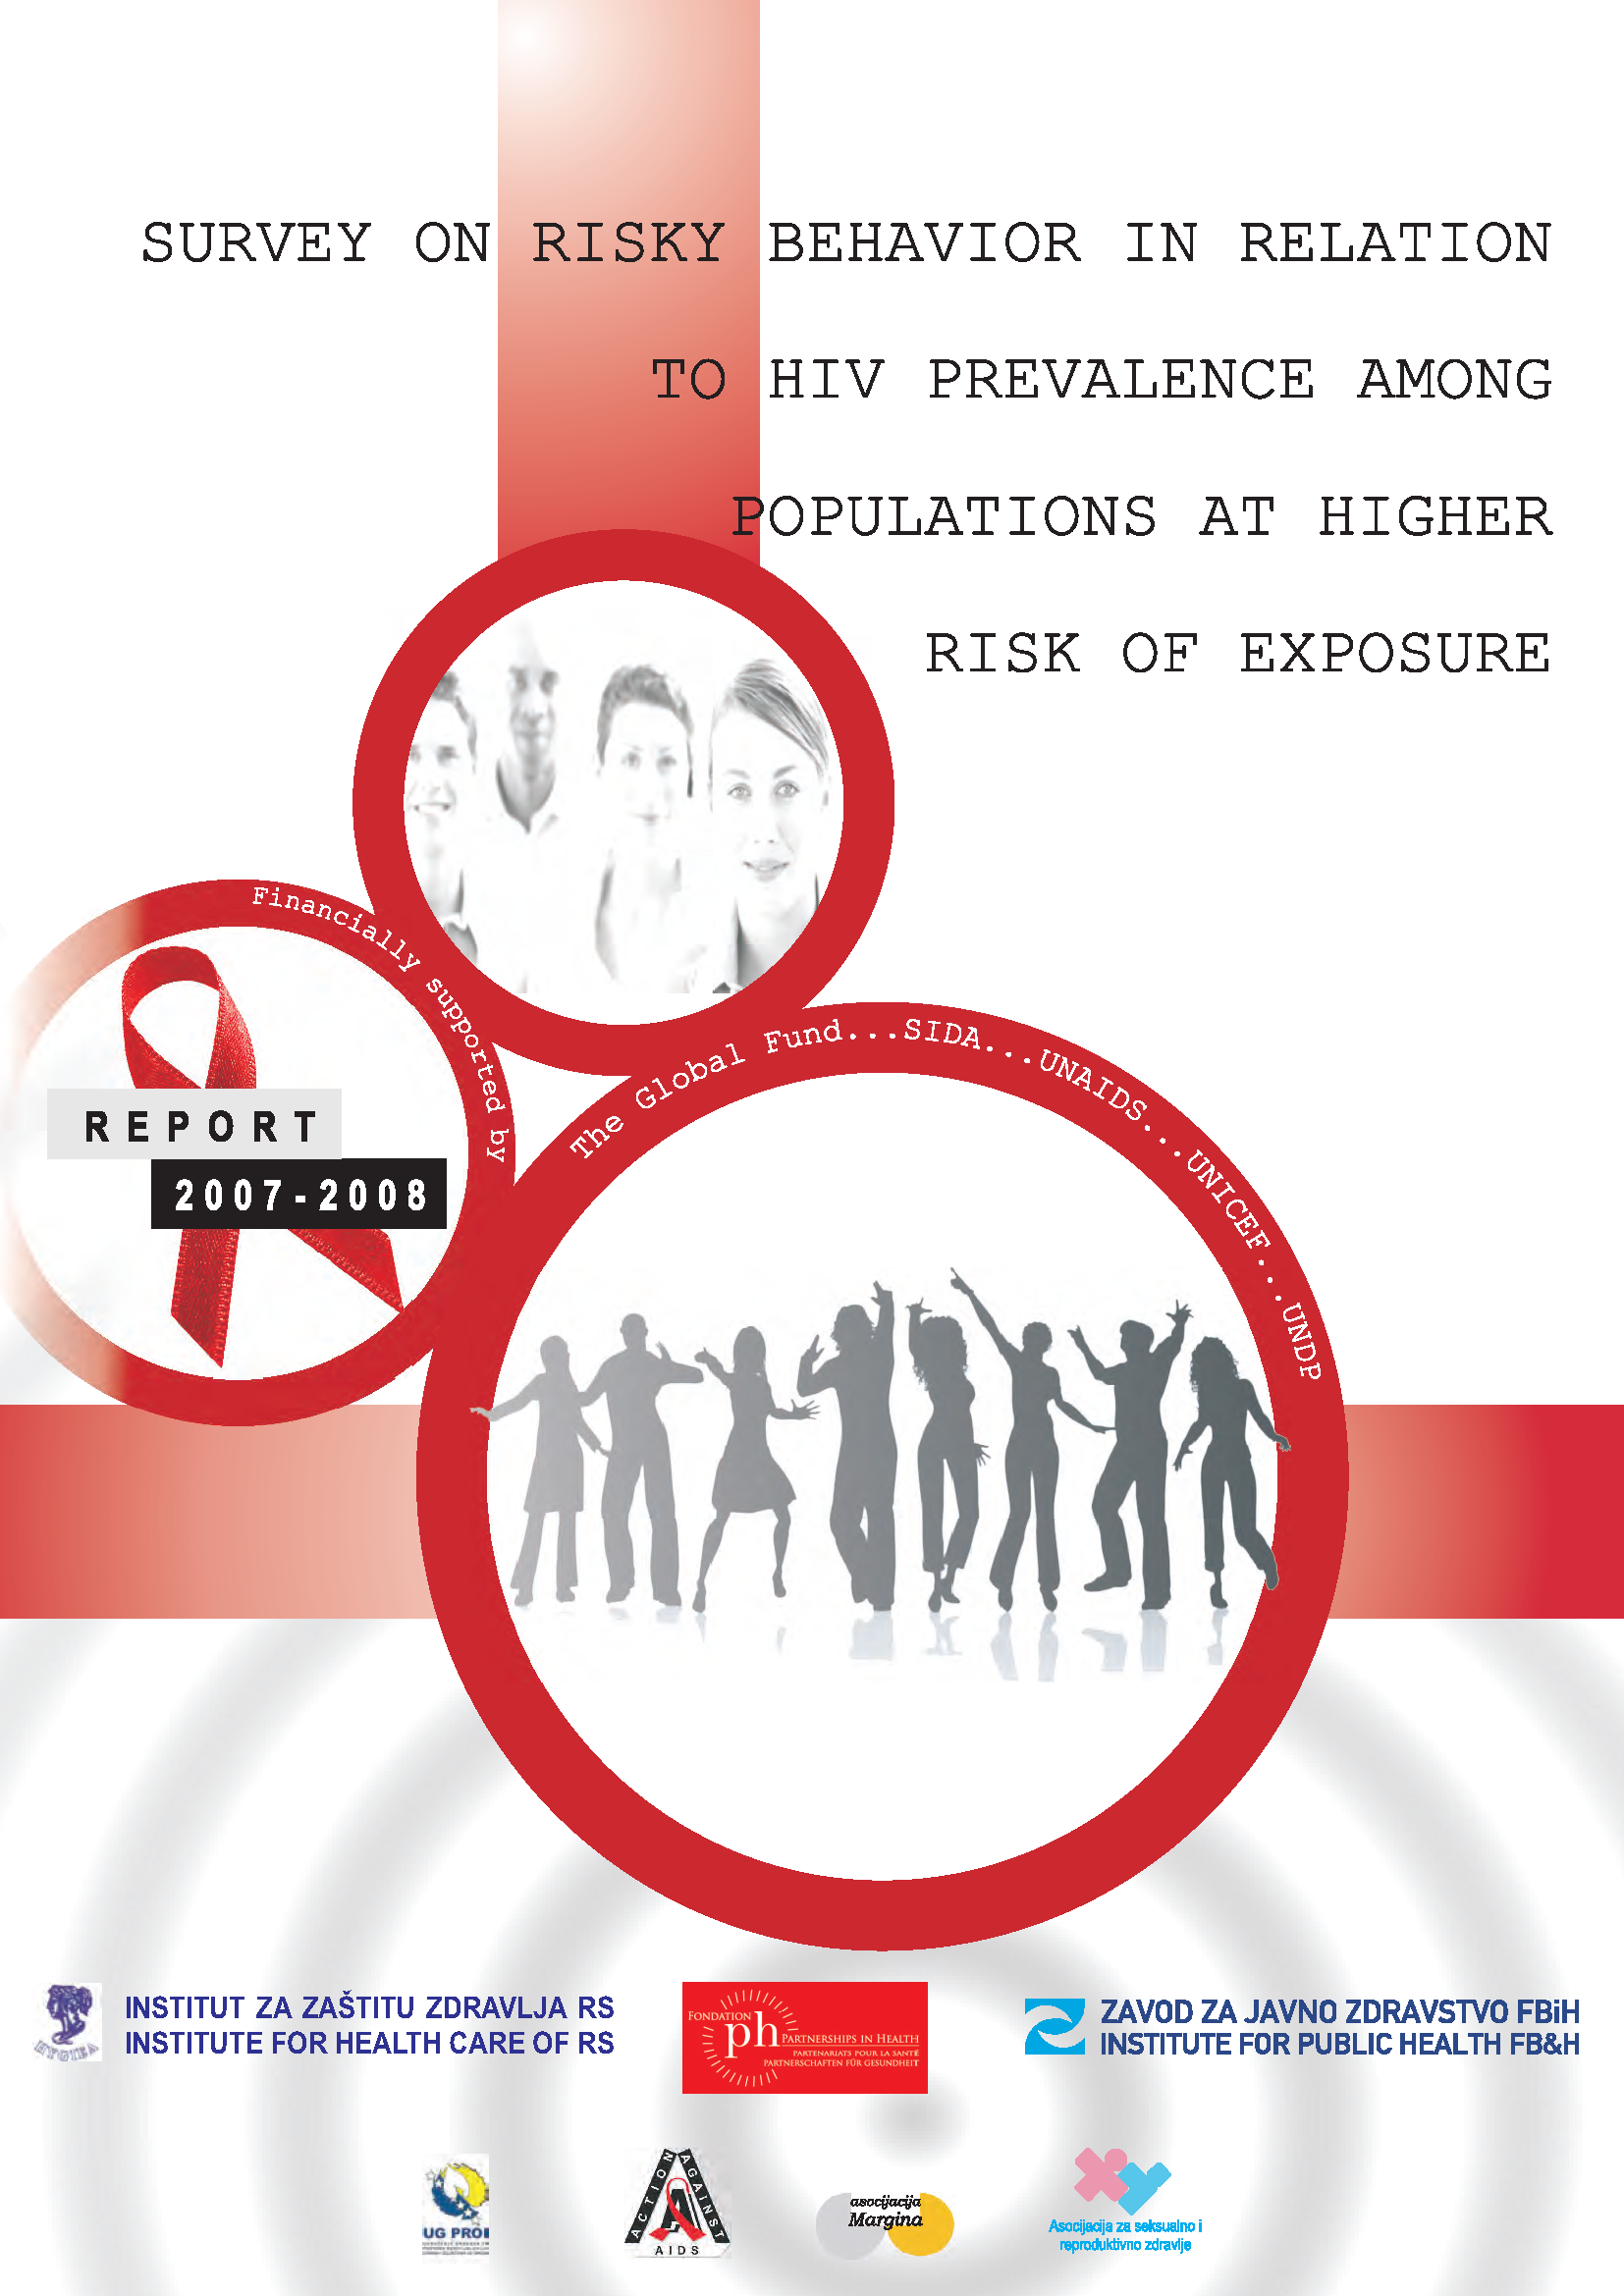 Survey on Risky Behavior in Relation to HIV Prevalence Among Populations at Higher Risk of Exposure, 2008.